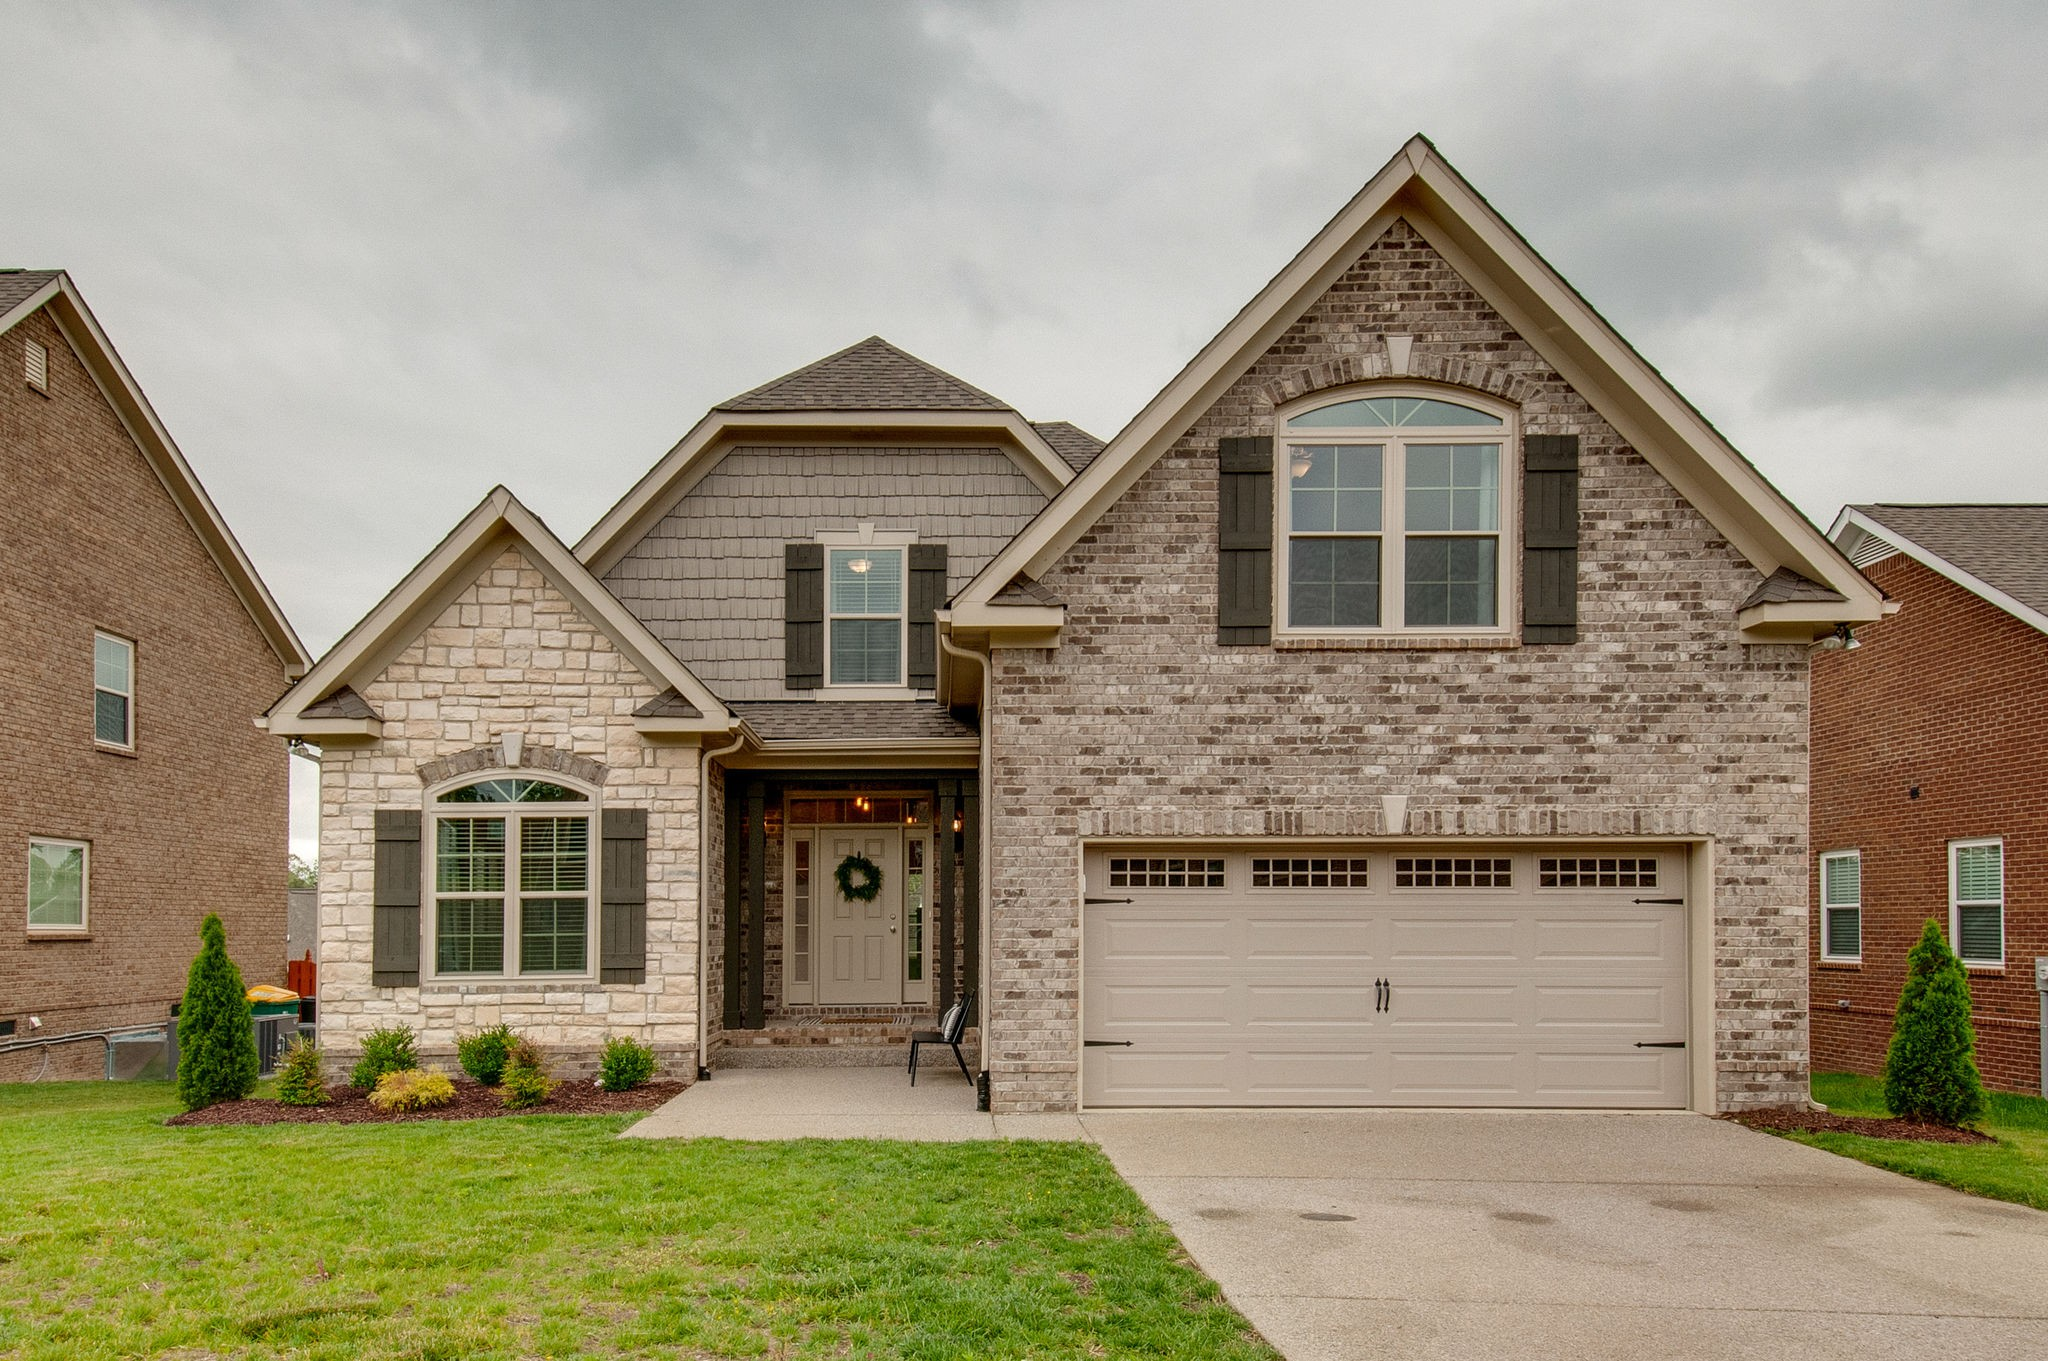 Enjoy this beautiful almost new home in Wades Grove without waiting for the build time! One of the largest lots in Wades Grove, fully sodded yard and fully fenced back yard. Harwood floors throughout most of the first floor. Upgraded light fixtures throughout. Kitchen with stainless steel appliances and granite counter tops. Tons of walk-in Finished Storage throughout the home.